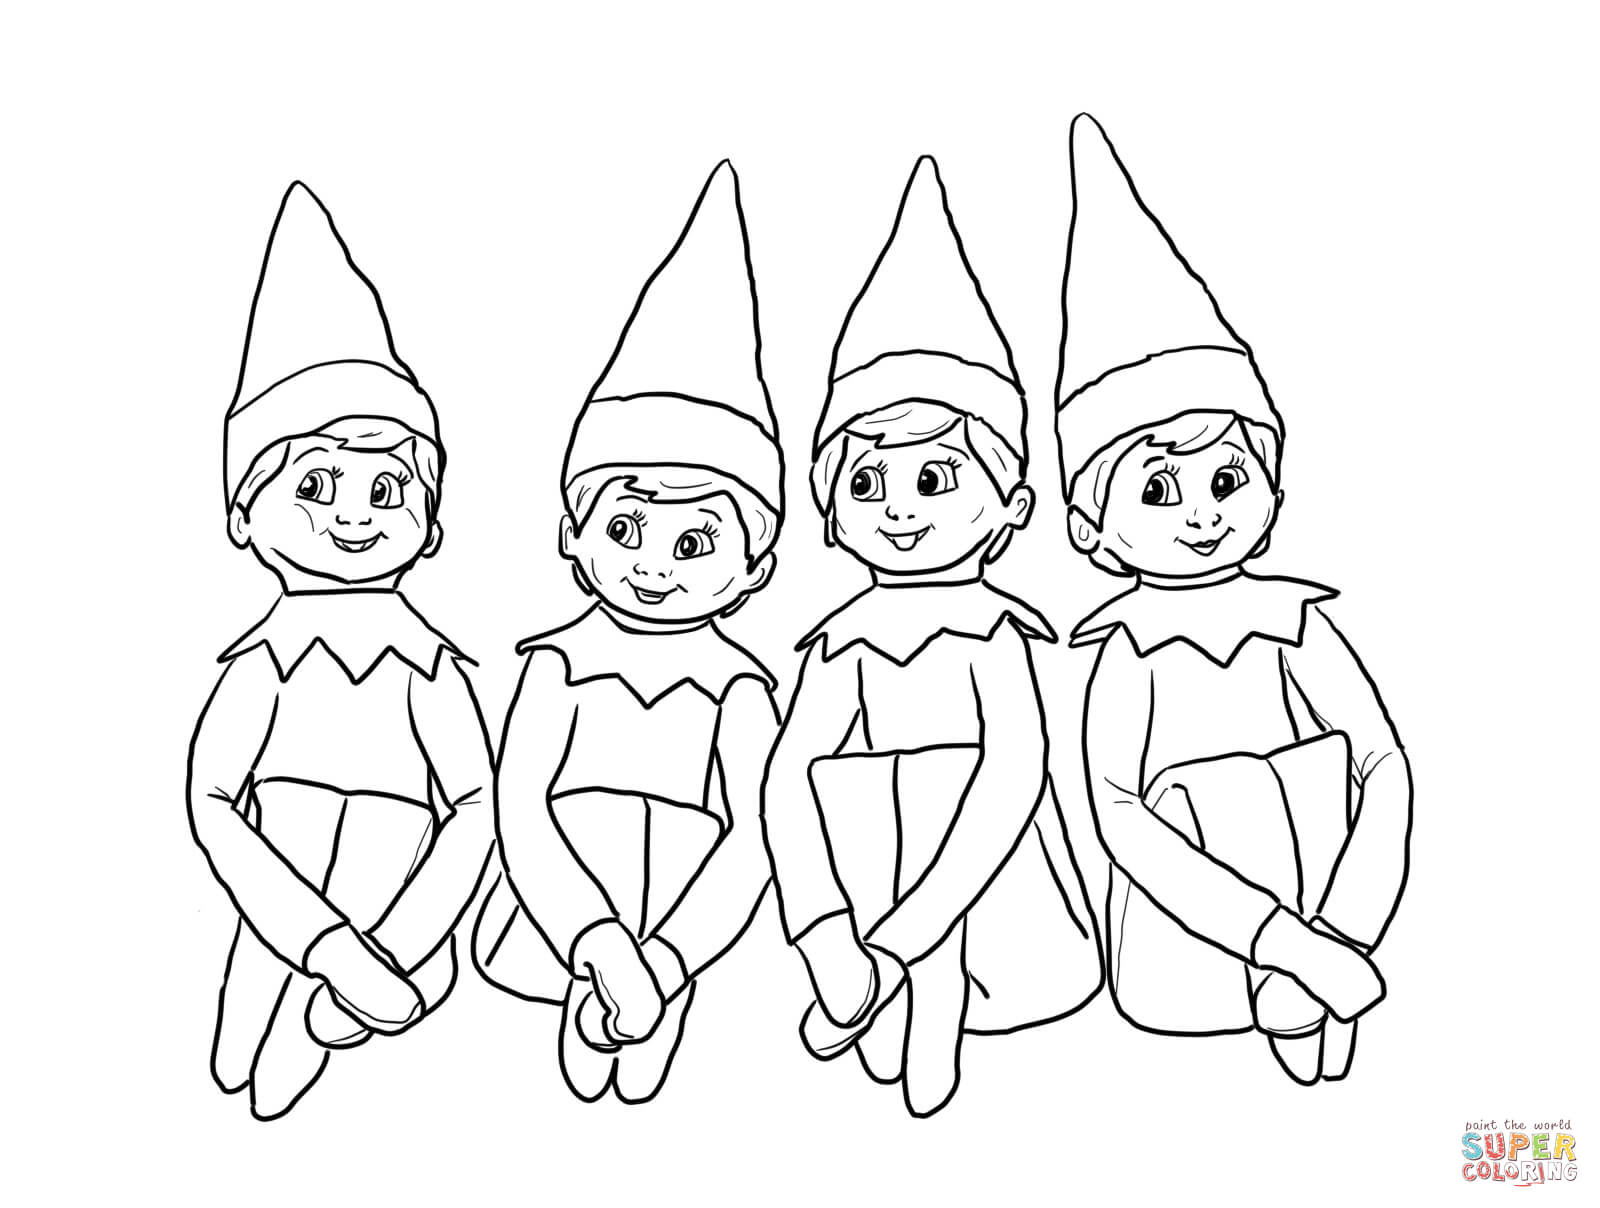 Elf On The Shelf Coloring Pages To Print Coloring Home On The Shelf Coloring Page